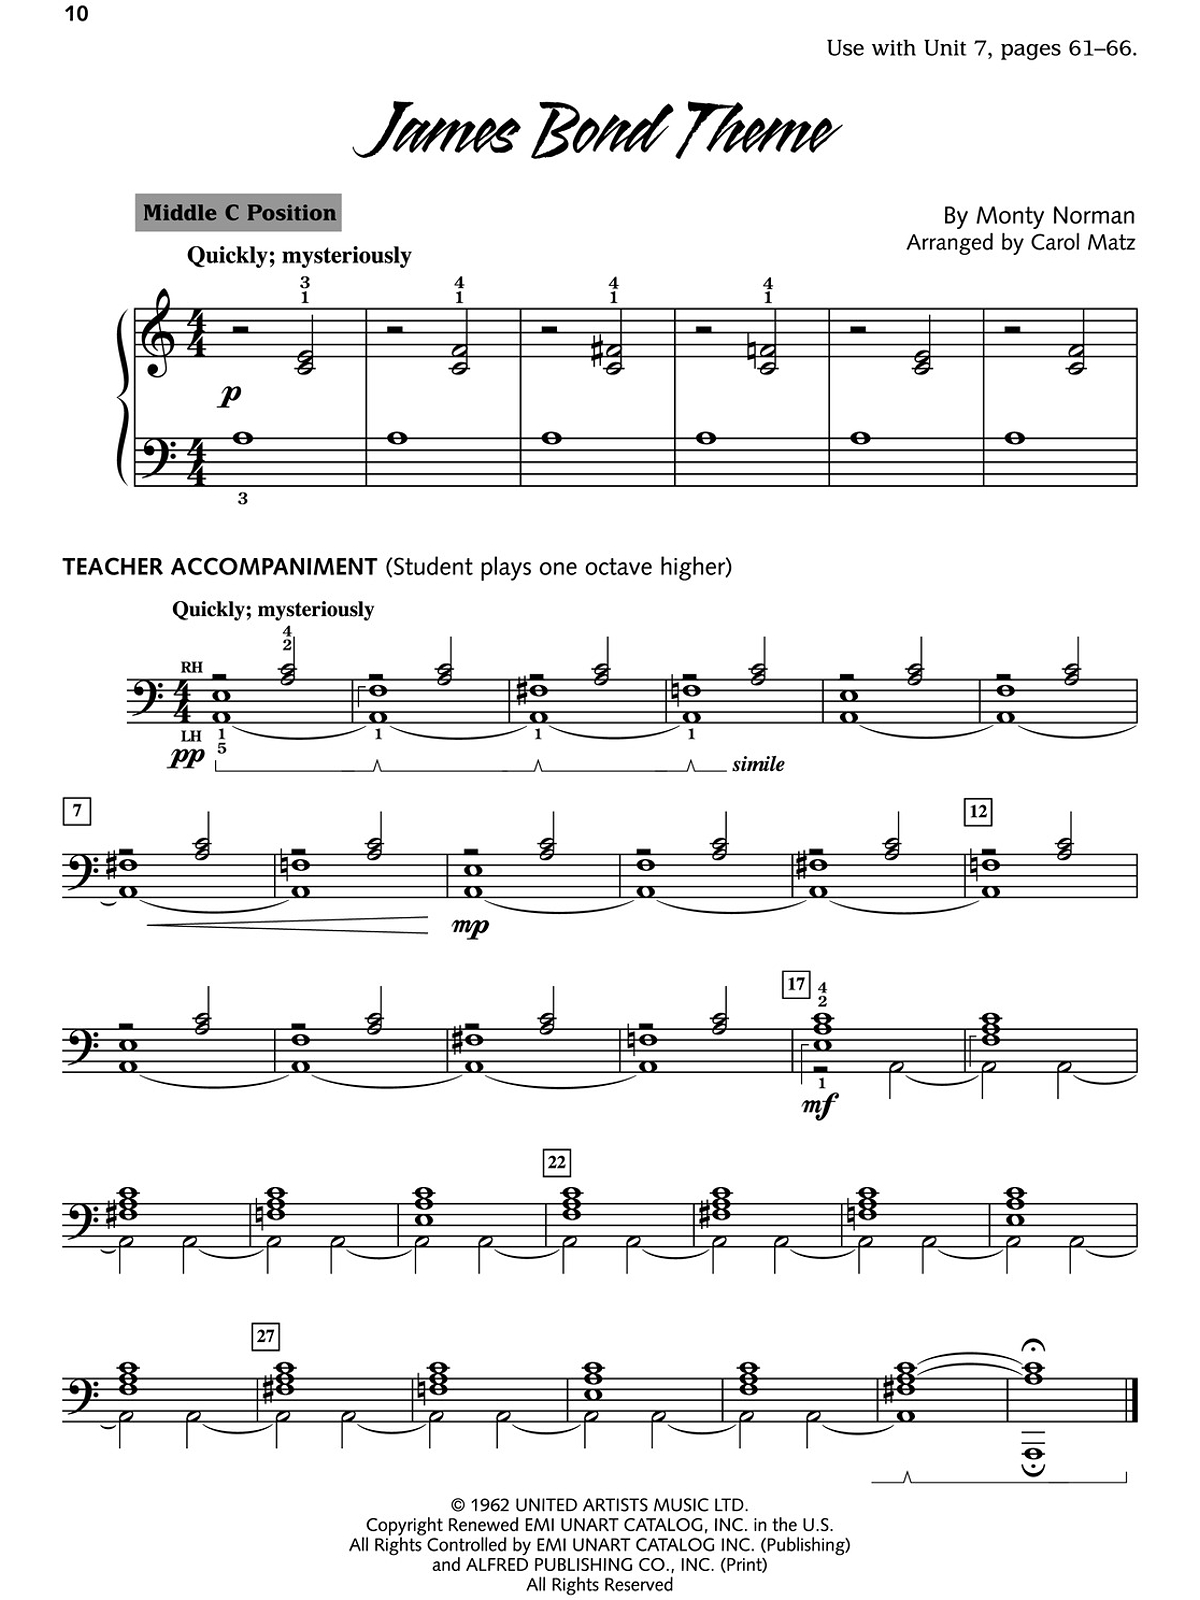 lion king medley sheet music pdf